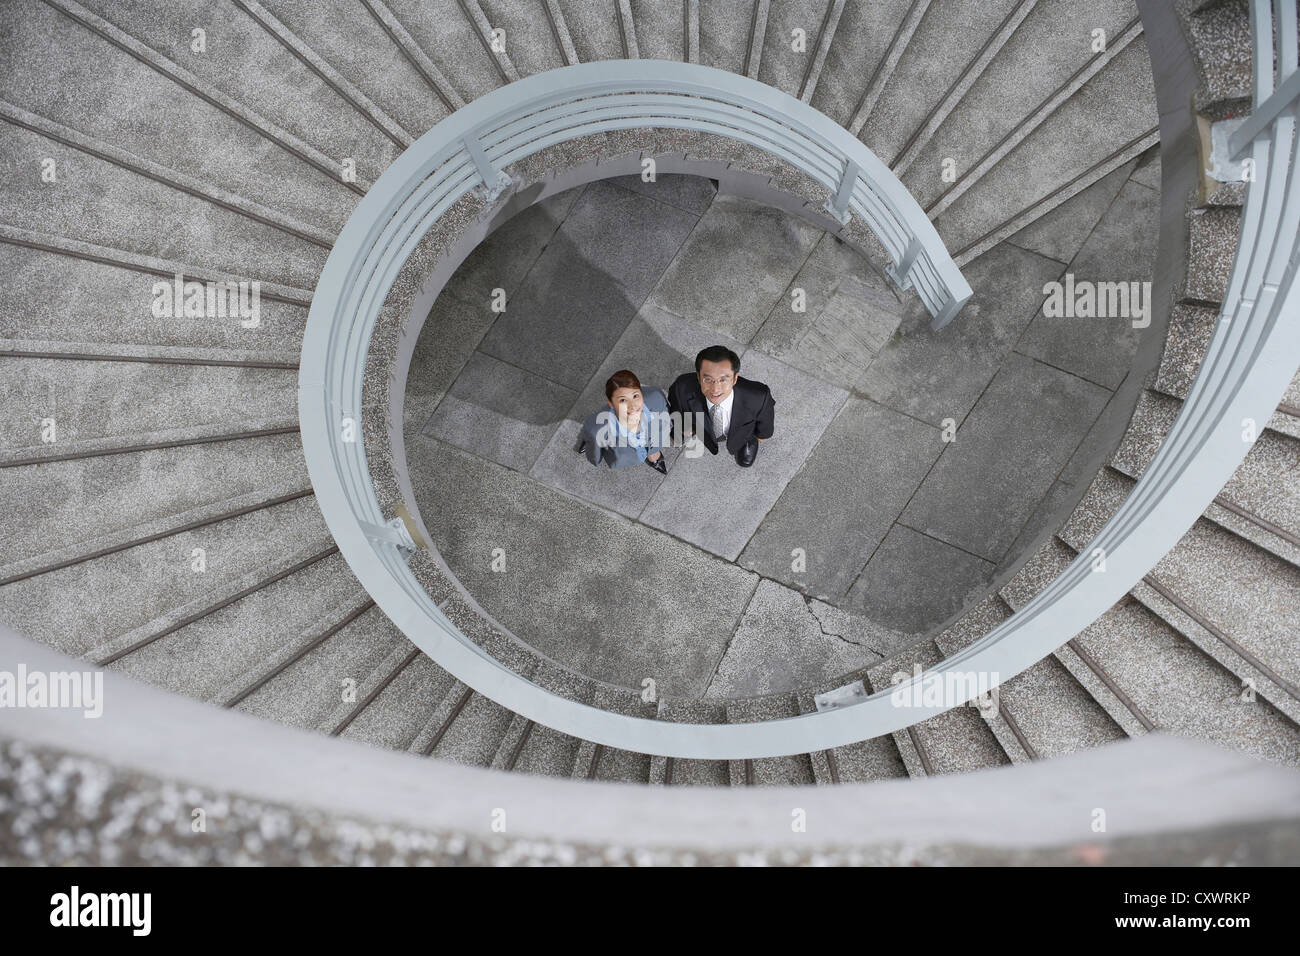 Business people under spiral staircase - Stock Image